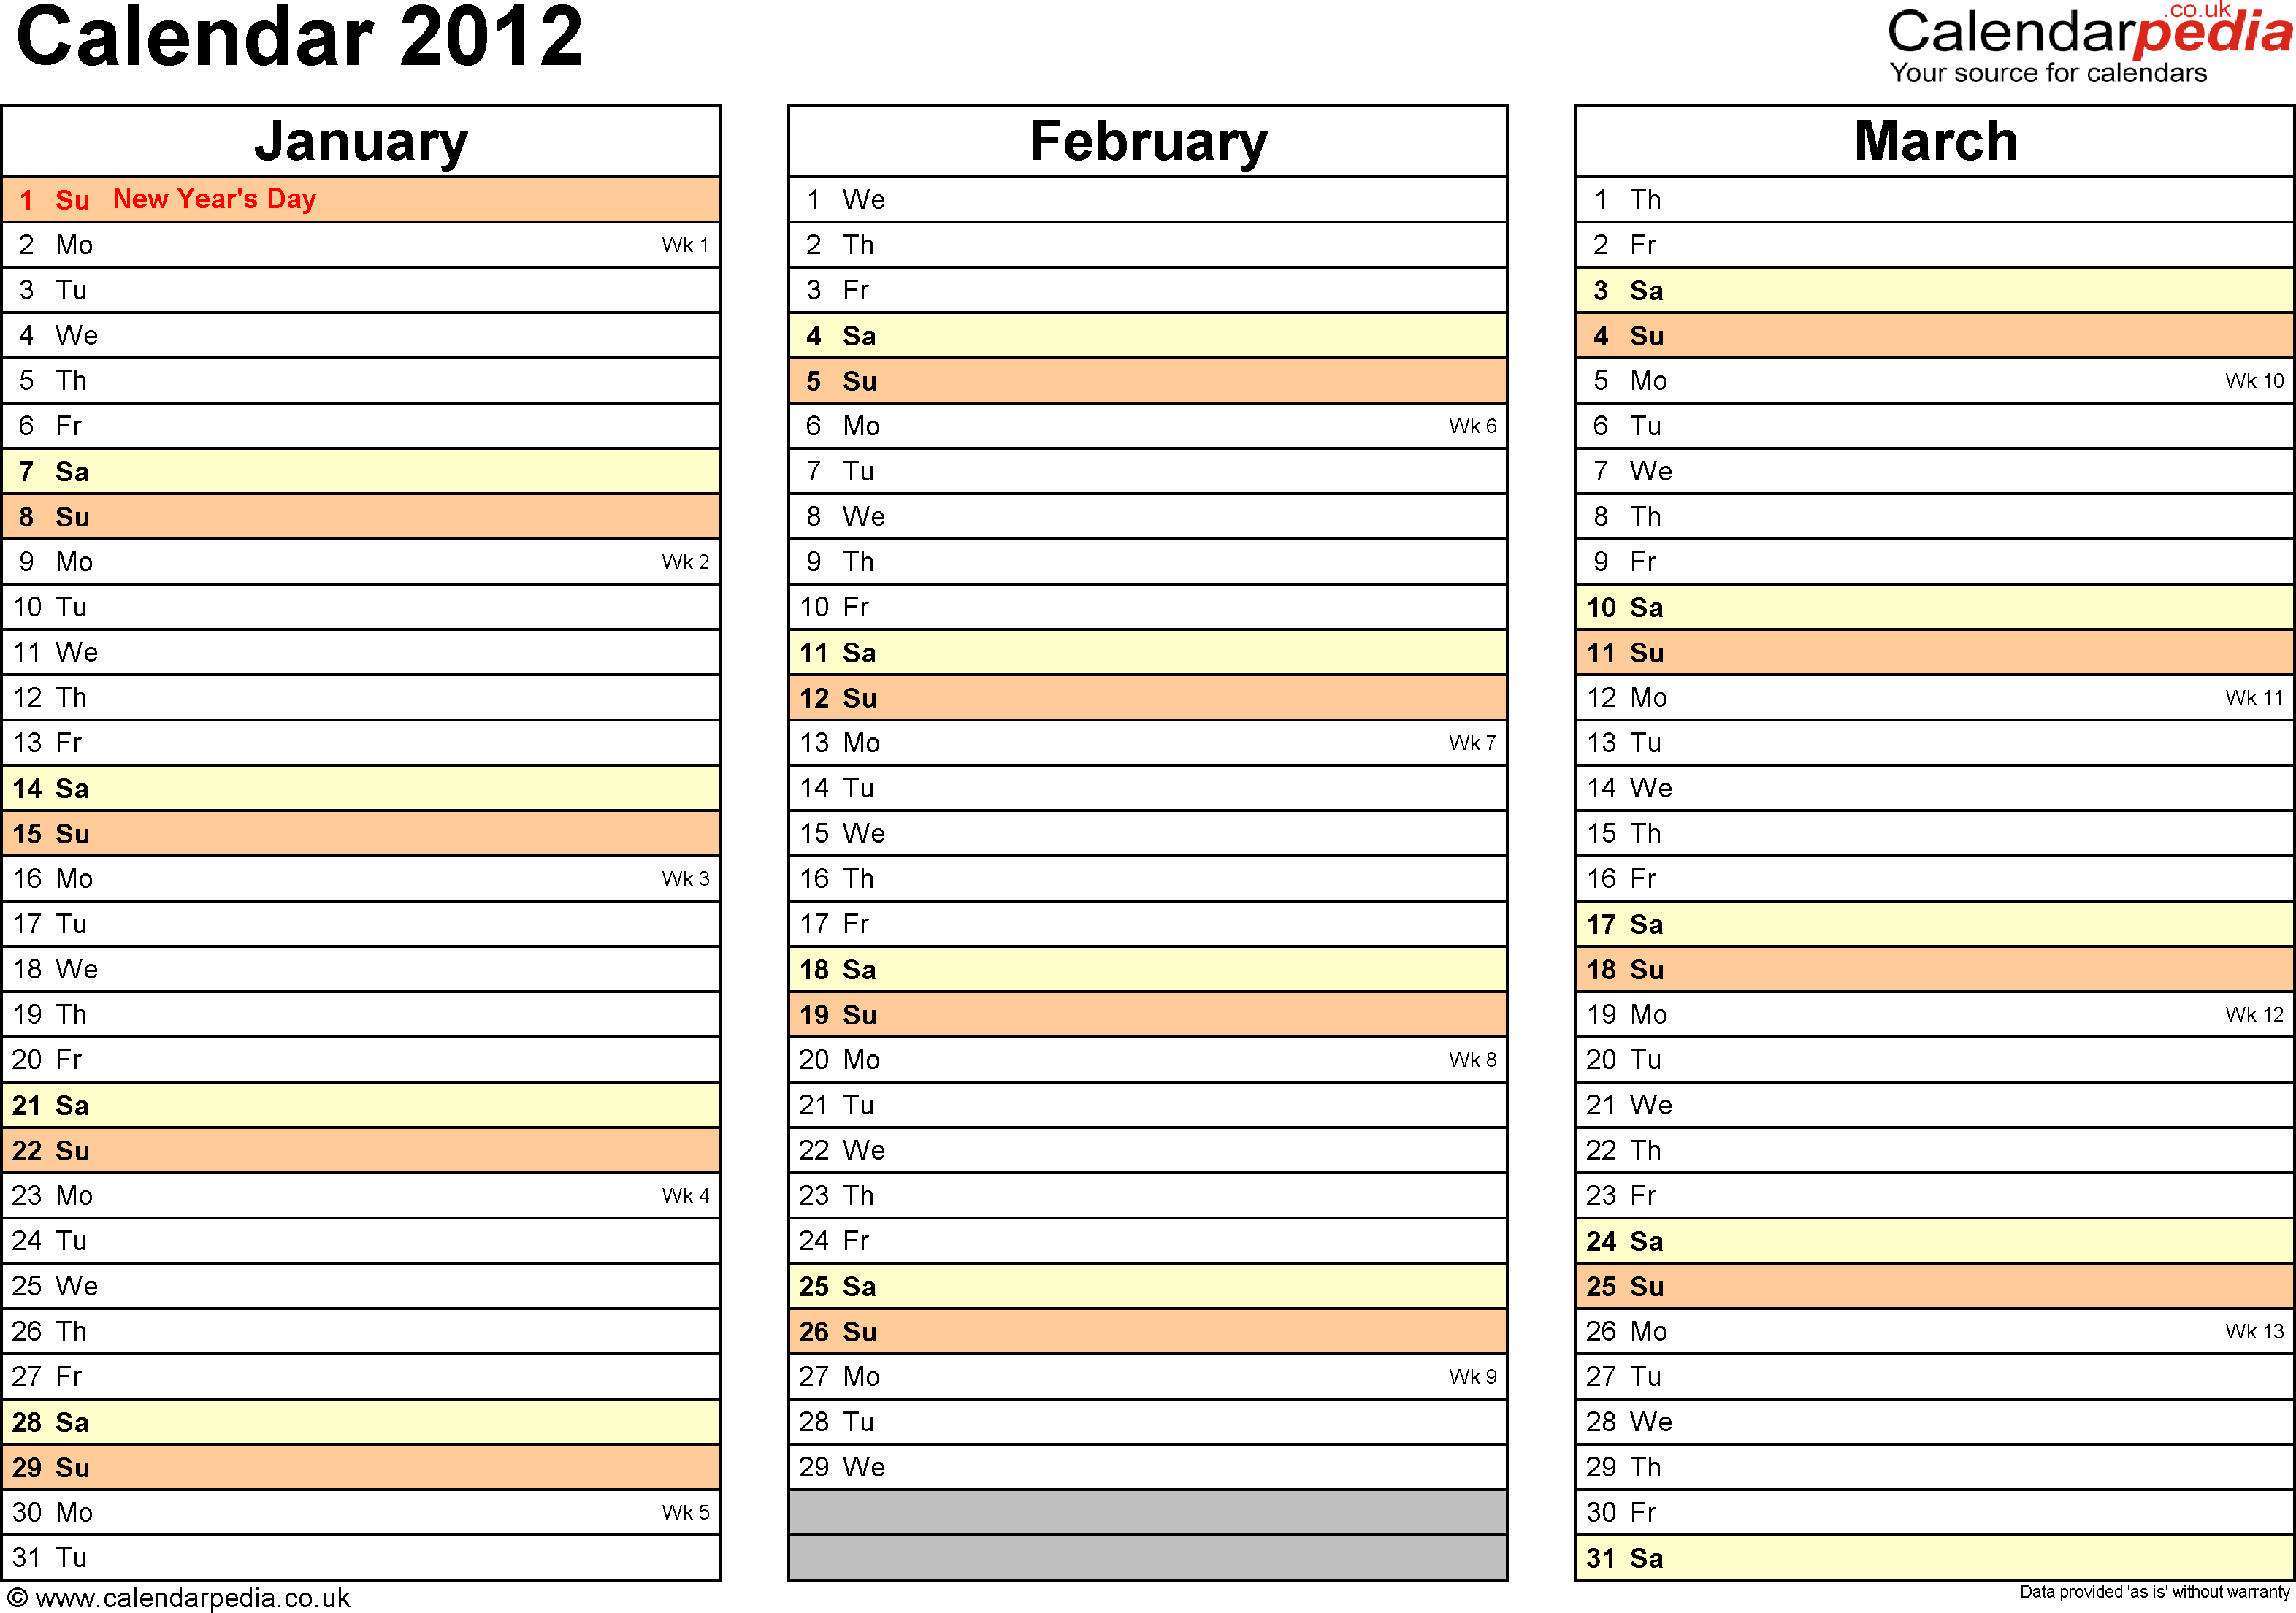 Template 6: Yearly calendar 2012 as PDF template, landscape orientation, 4 pages, months horizontally, days vertically, with UK bank holidays and week numbers